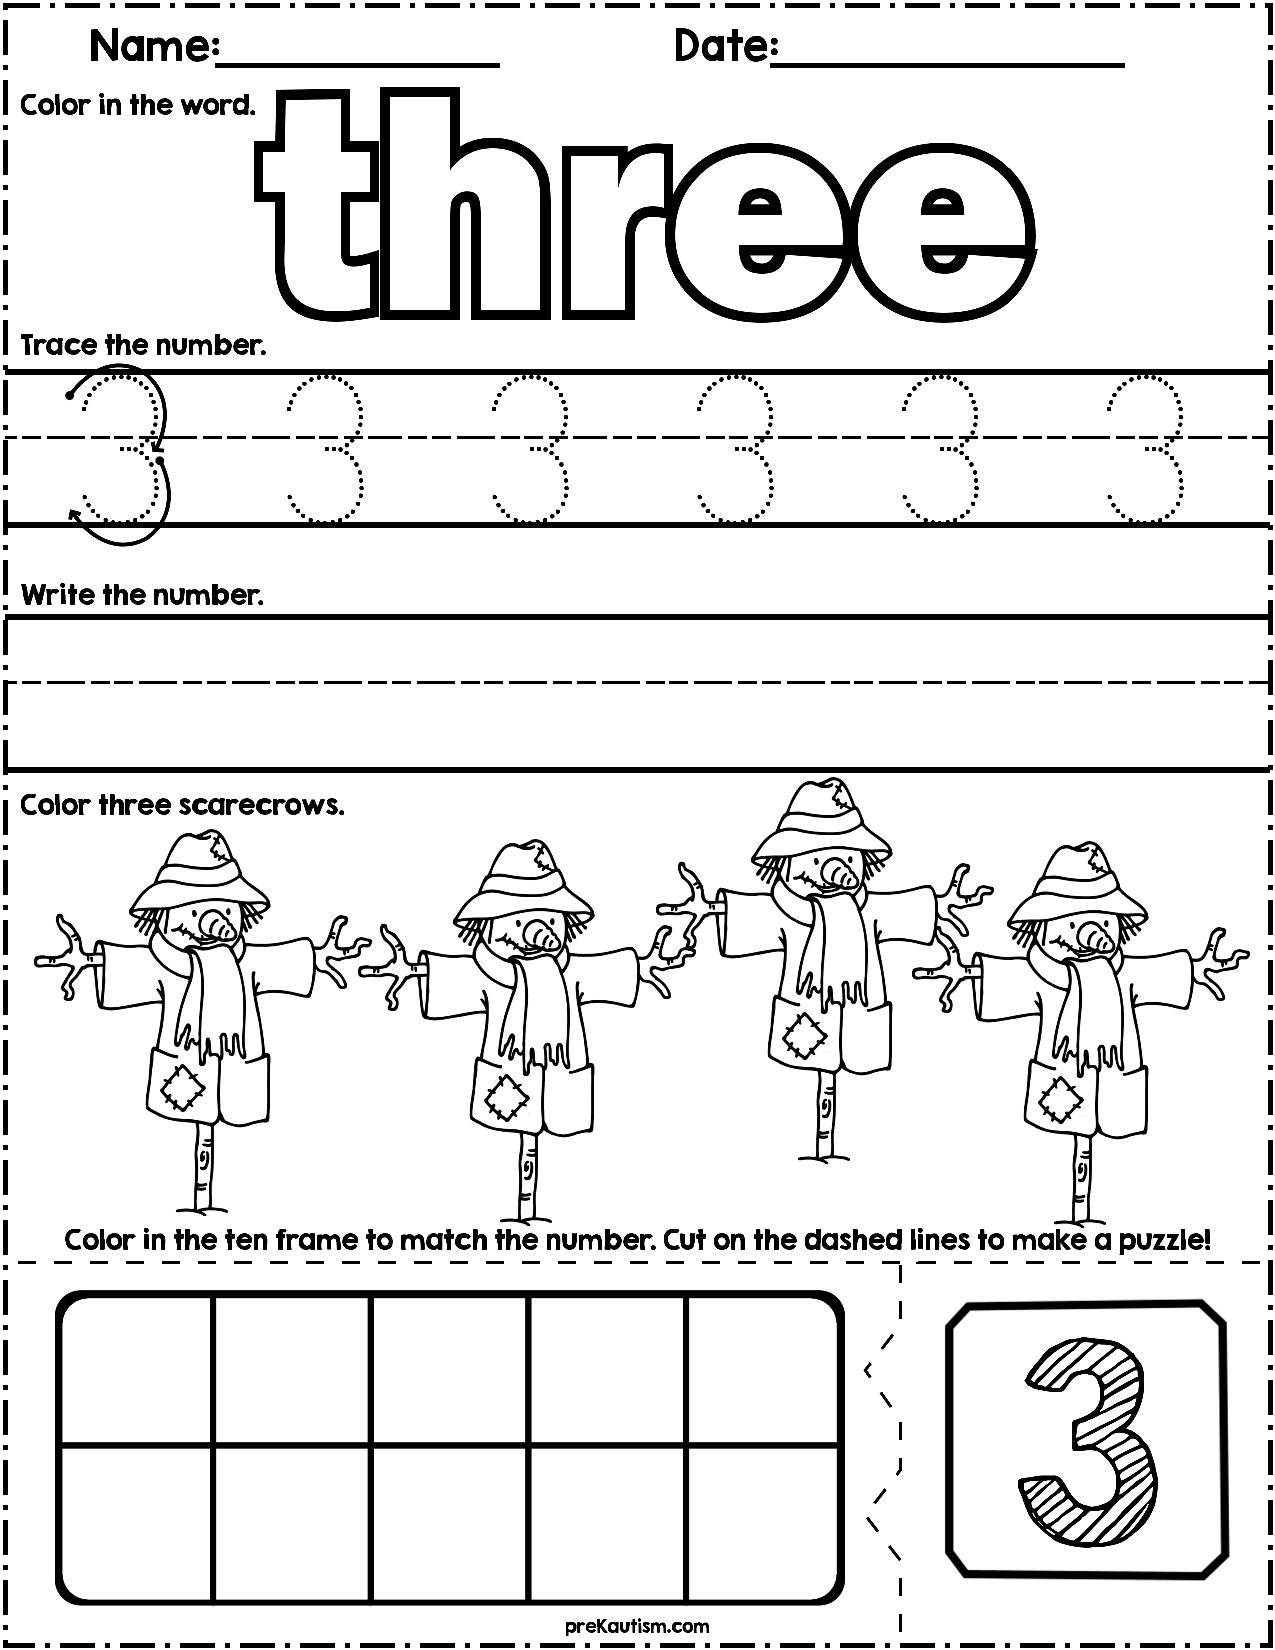 1 50 Learn How To Count And Write Numbers 1 10 With These Farm Themed Printable Activity Works Math Worksheets Kindergarten Morning Work Montessori Lessons [ 1650 x 1275 Pixel ]